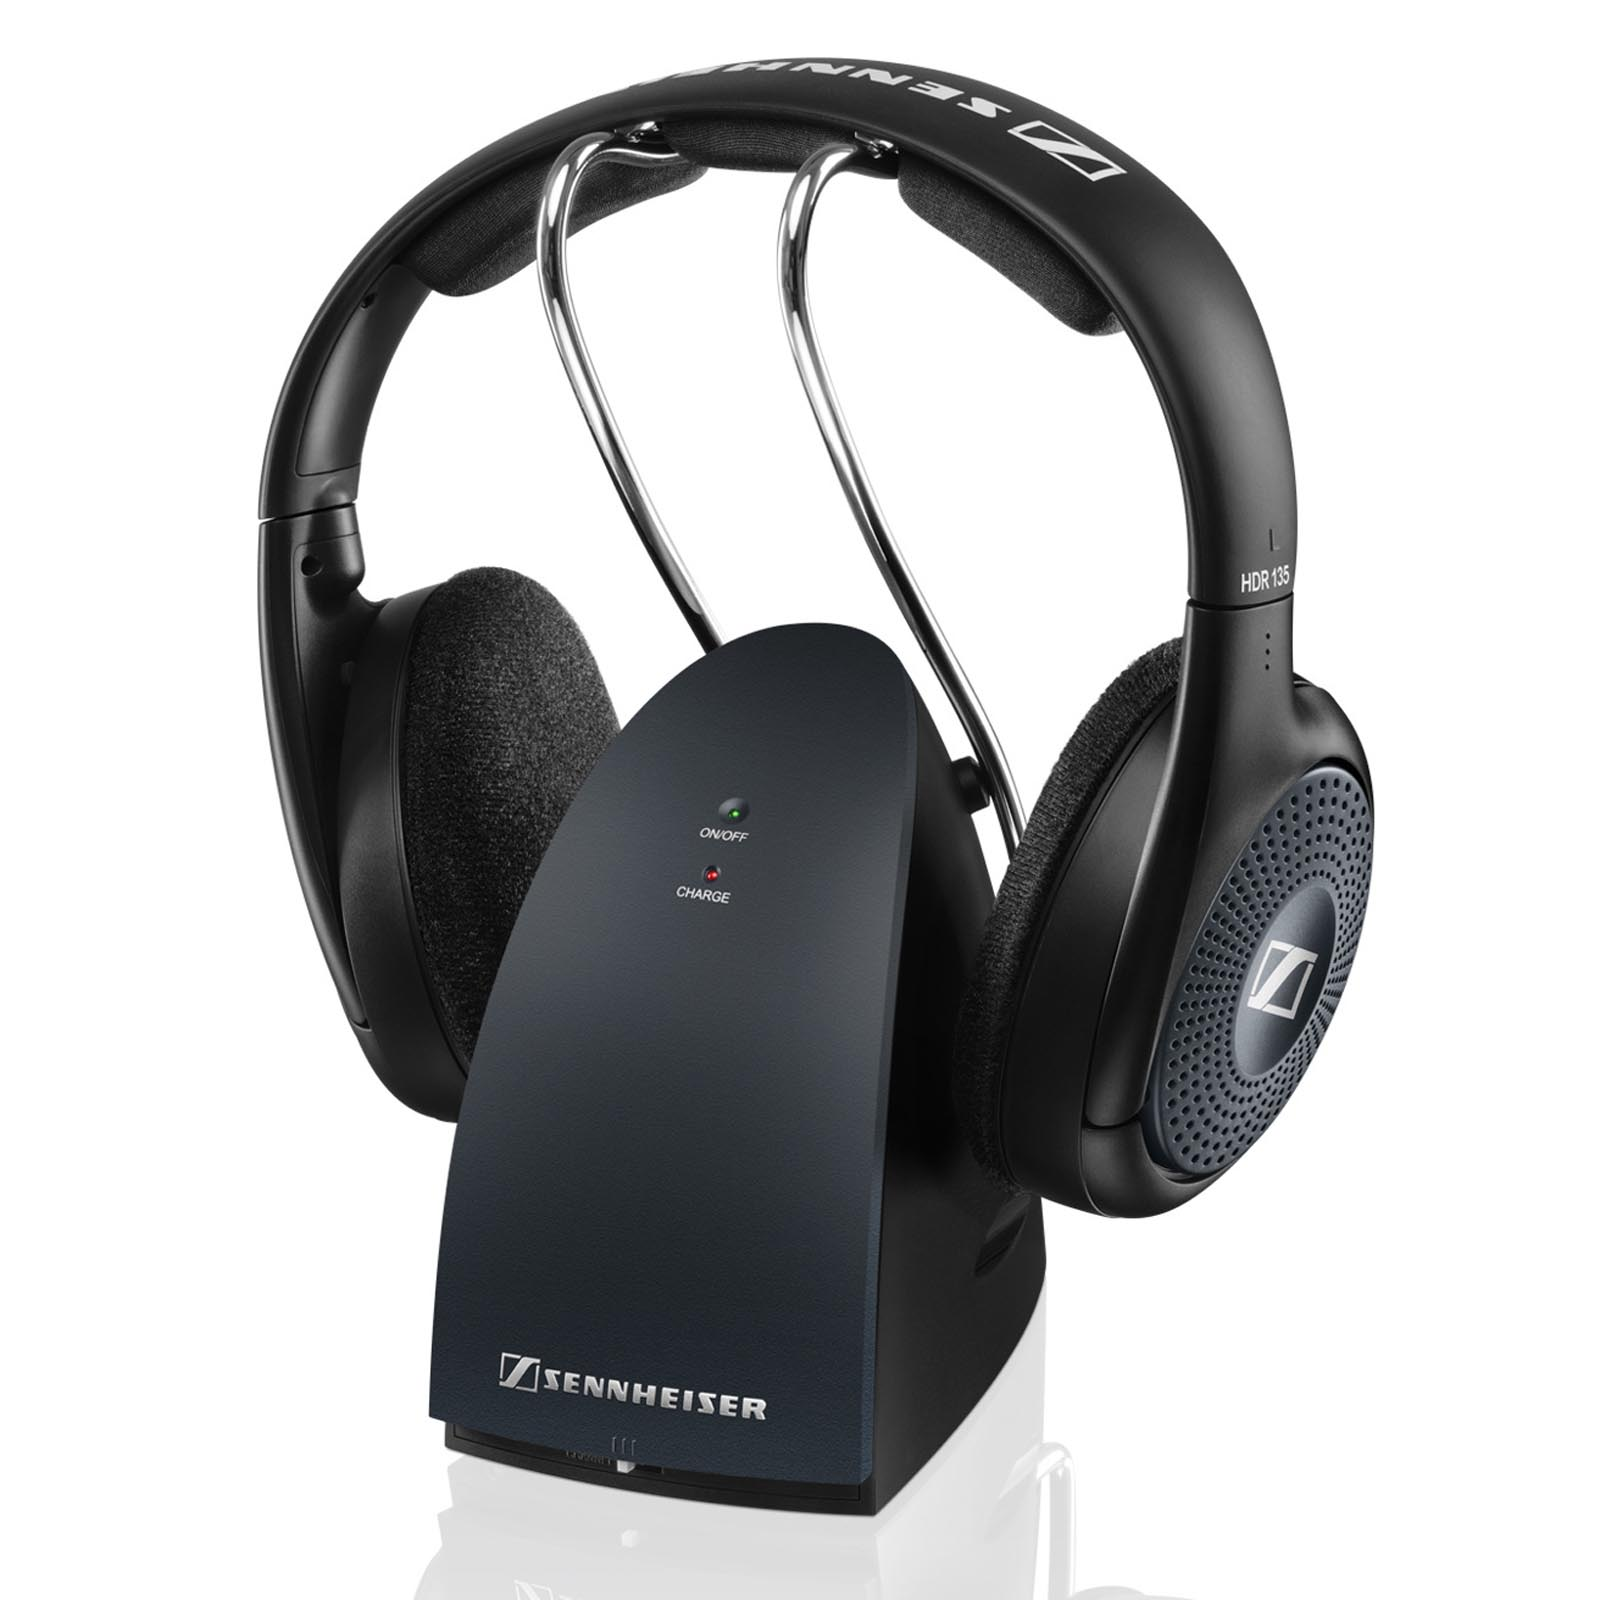 Sennheiser 506298 900MHz Open-Aire RF Headphones with Charging Stand